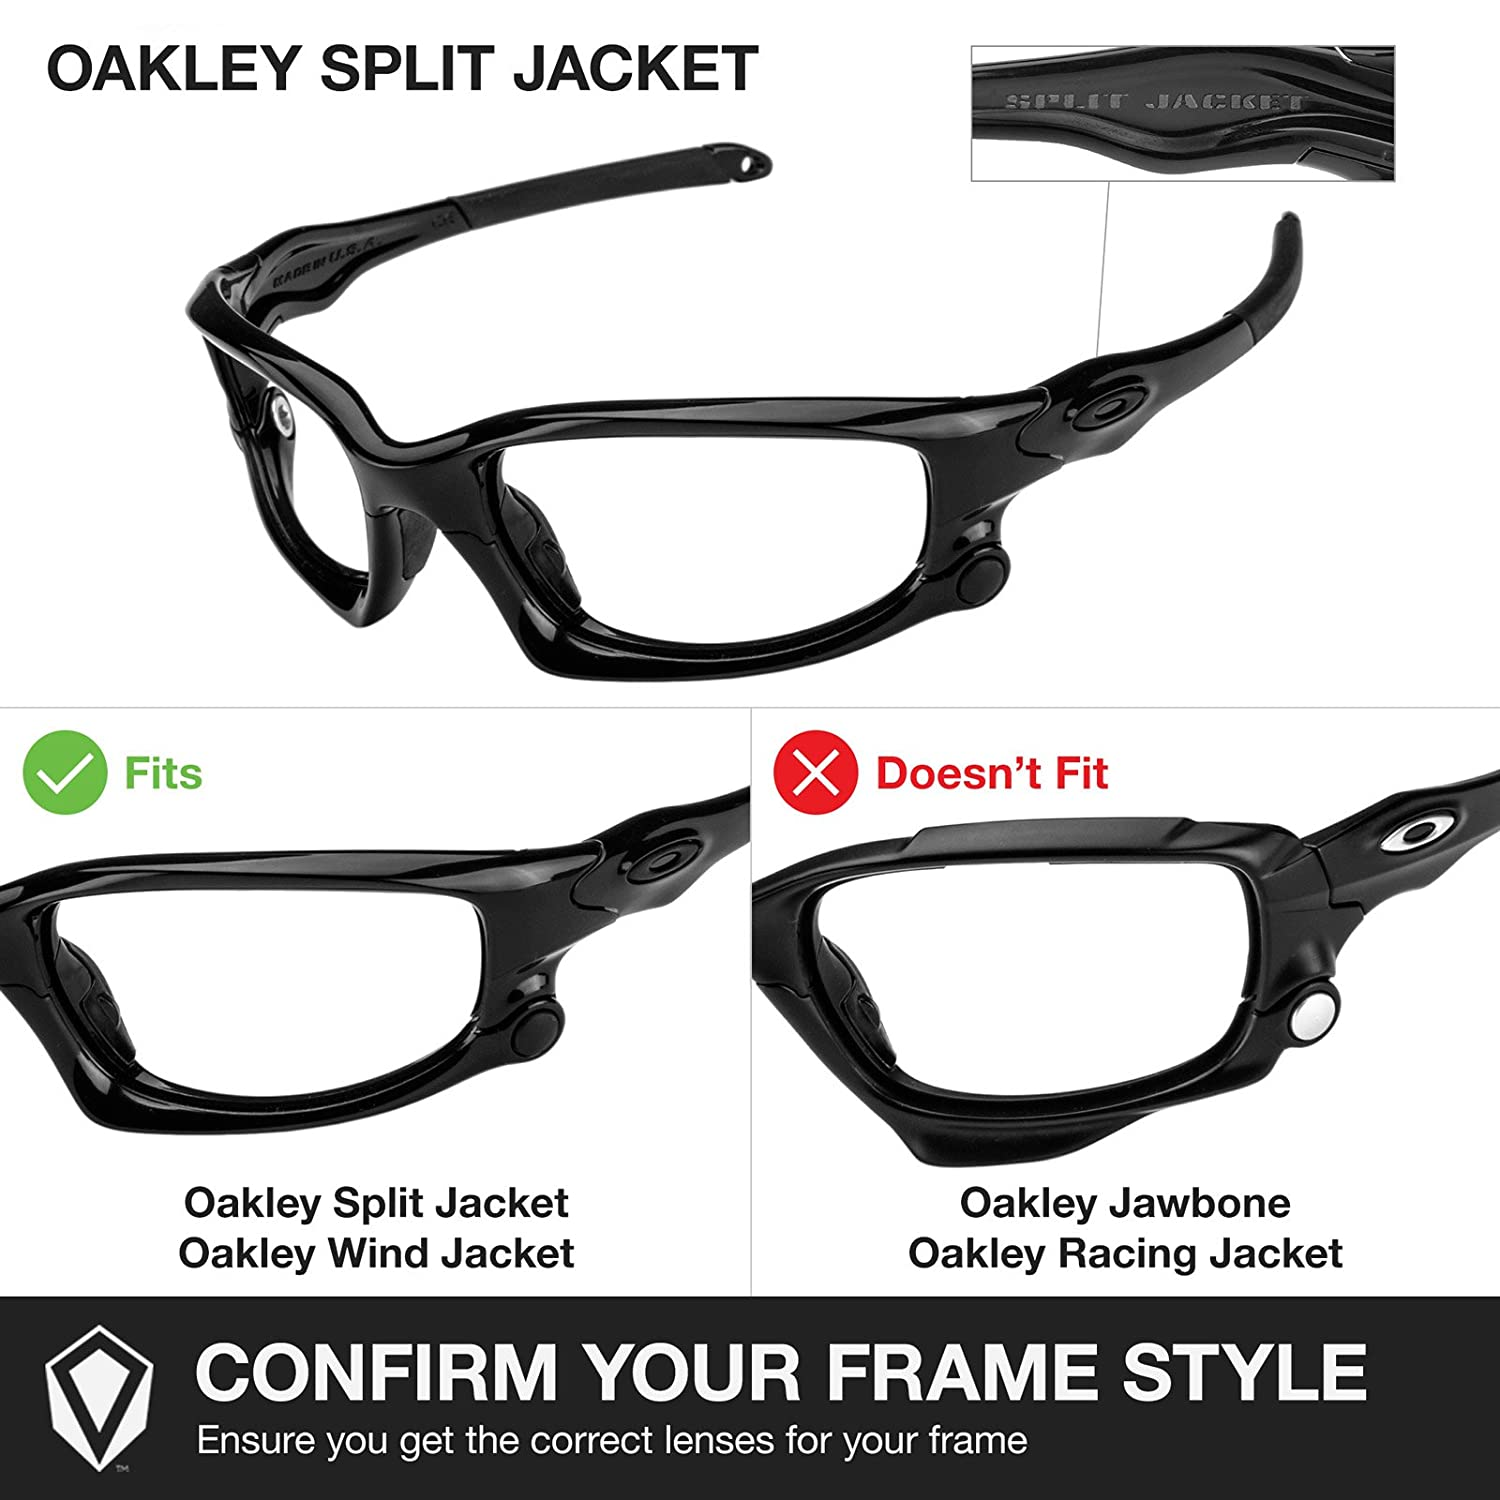 oakley split jacket  amazon: revant lenses for oakley split jacket polarized 24k gold: clothing